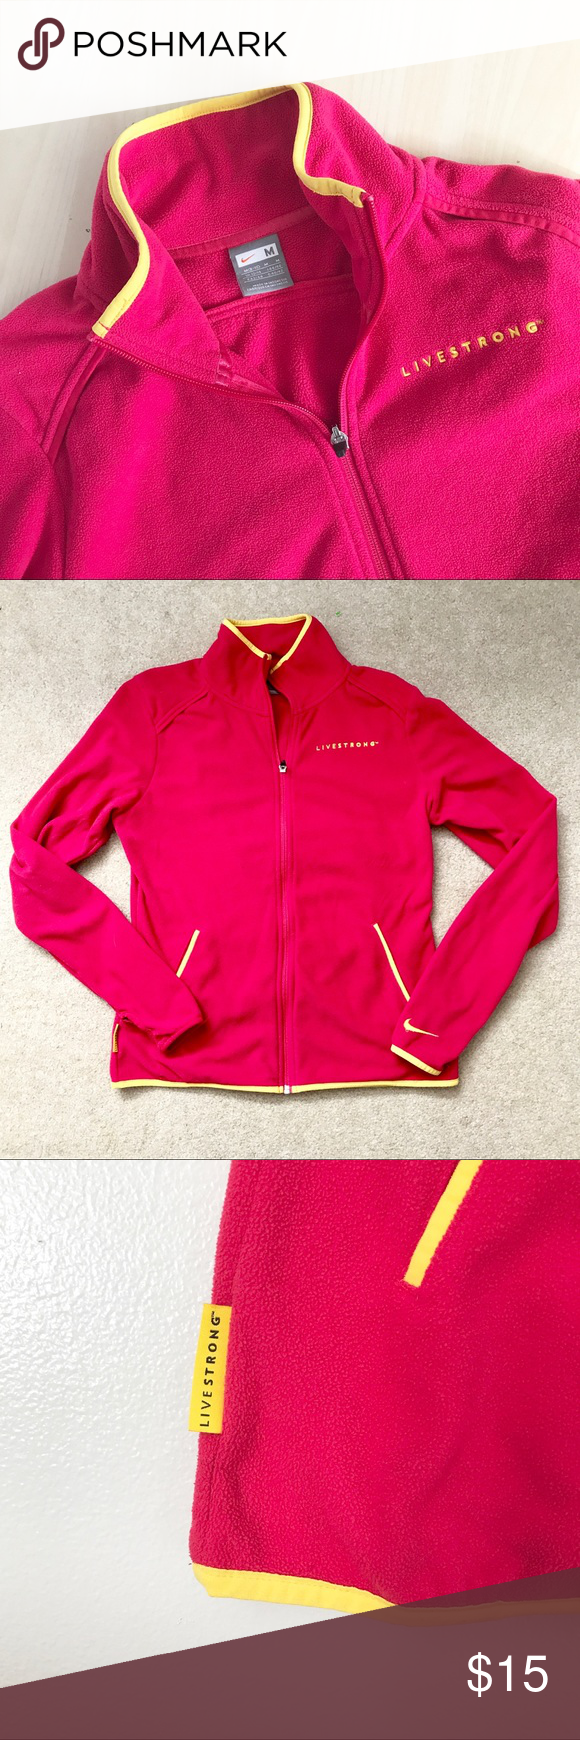 Livestrong pink fleece zipup jacket this bright fleece jacket is